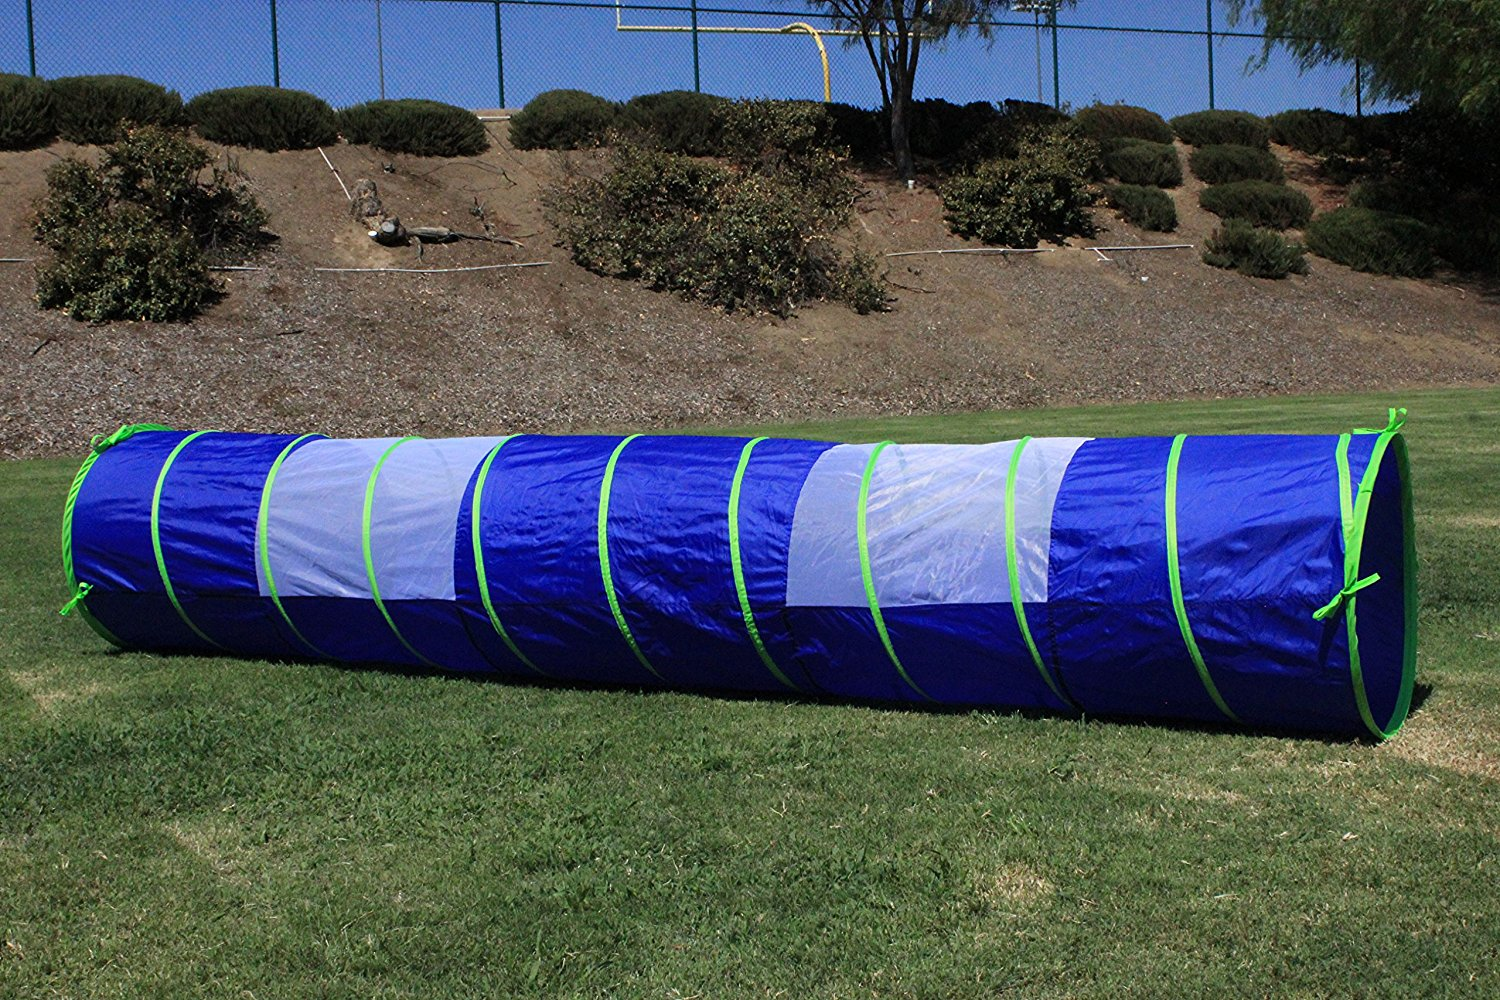 32c3c9765515 G3Elite Blue 11' Play Tunnel With Bag, Indoor/Outdoor, For Kids -  Boys/Girls, Also Great For Pets, Fast And Easy Set-Up/Fold-Up, Childrens  Portable ...